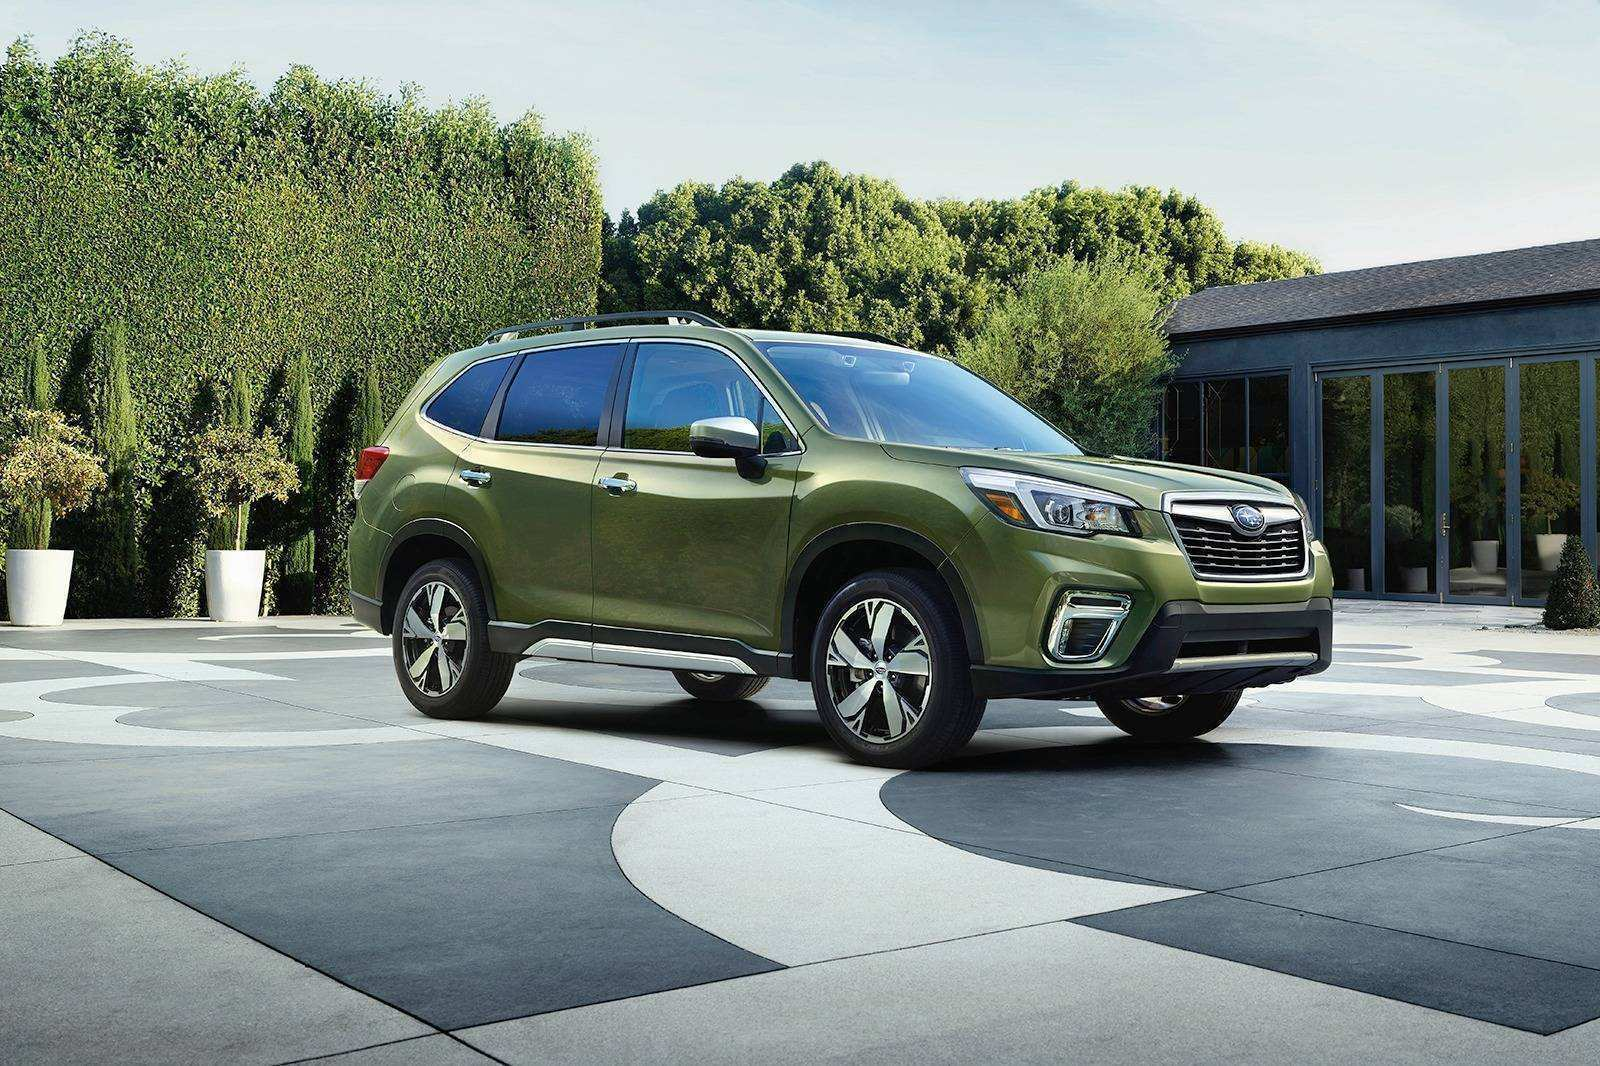 20 Best Subaru Forester 2019 Ground Clearance Overview